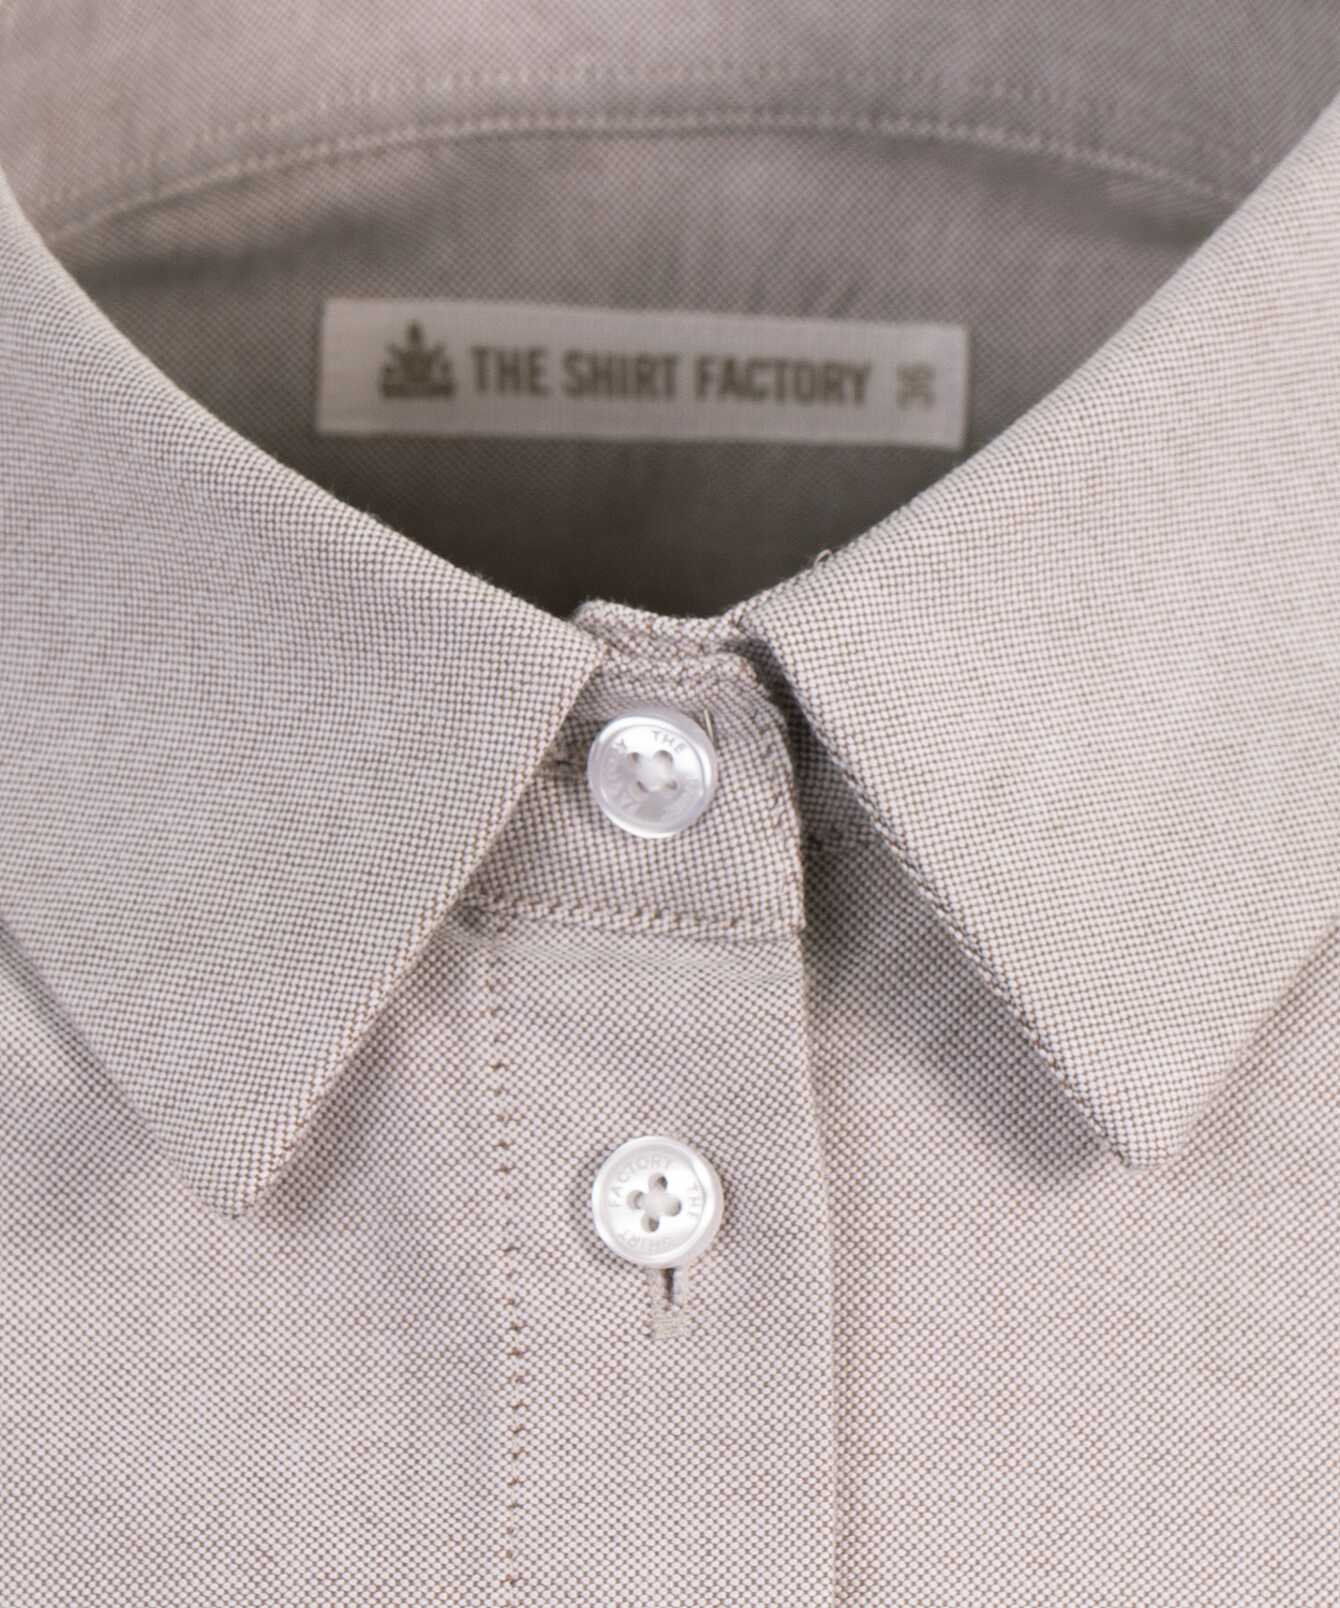 Shirt Tilde Boston Oxford Sand The Shirt Factory